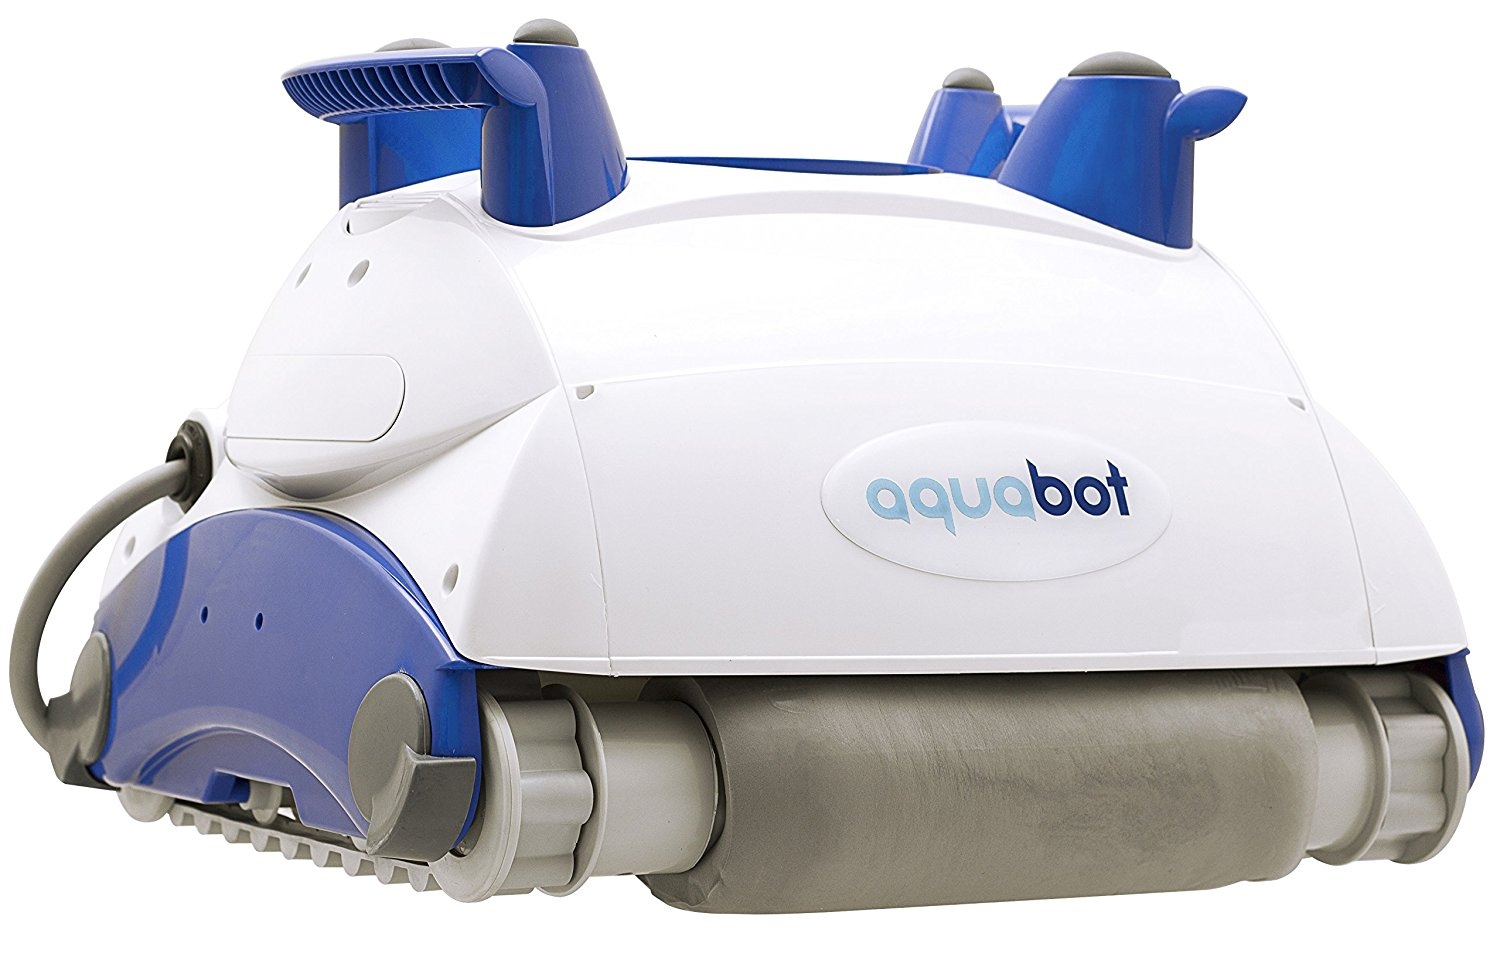 Aquabot Junior Nxt Robotic Pool Cleaner